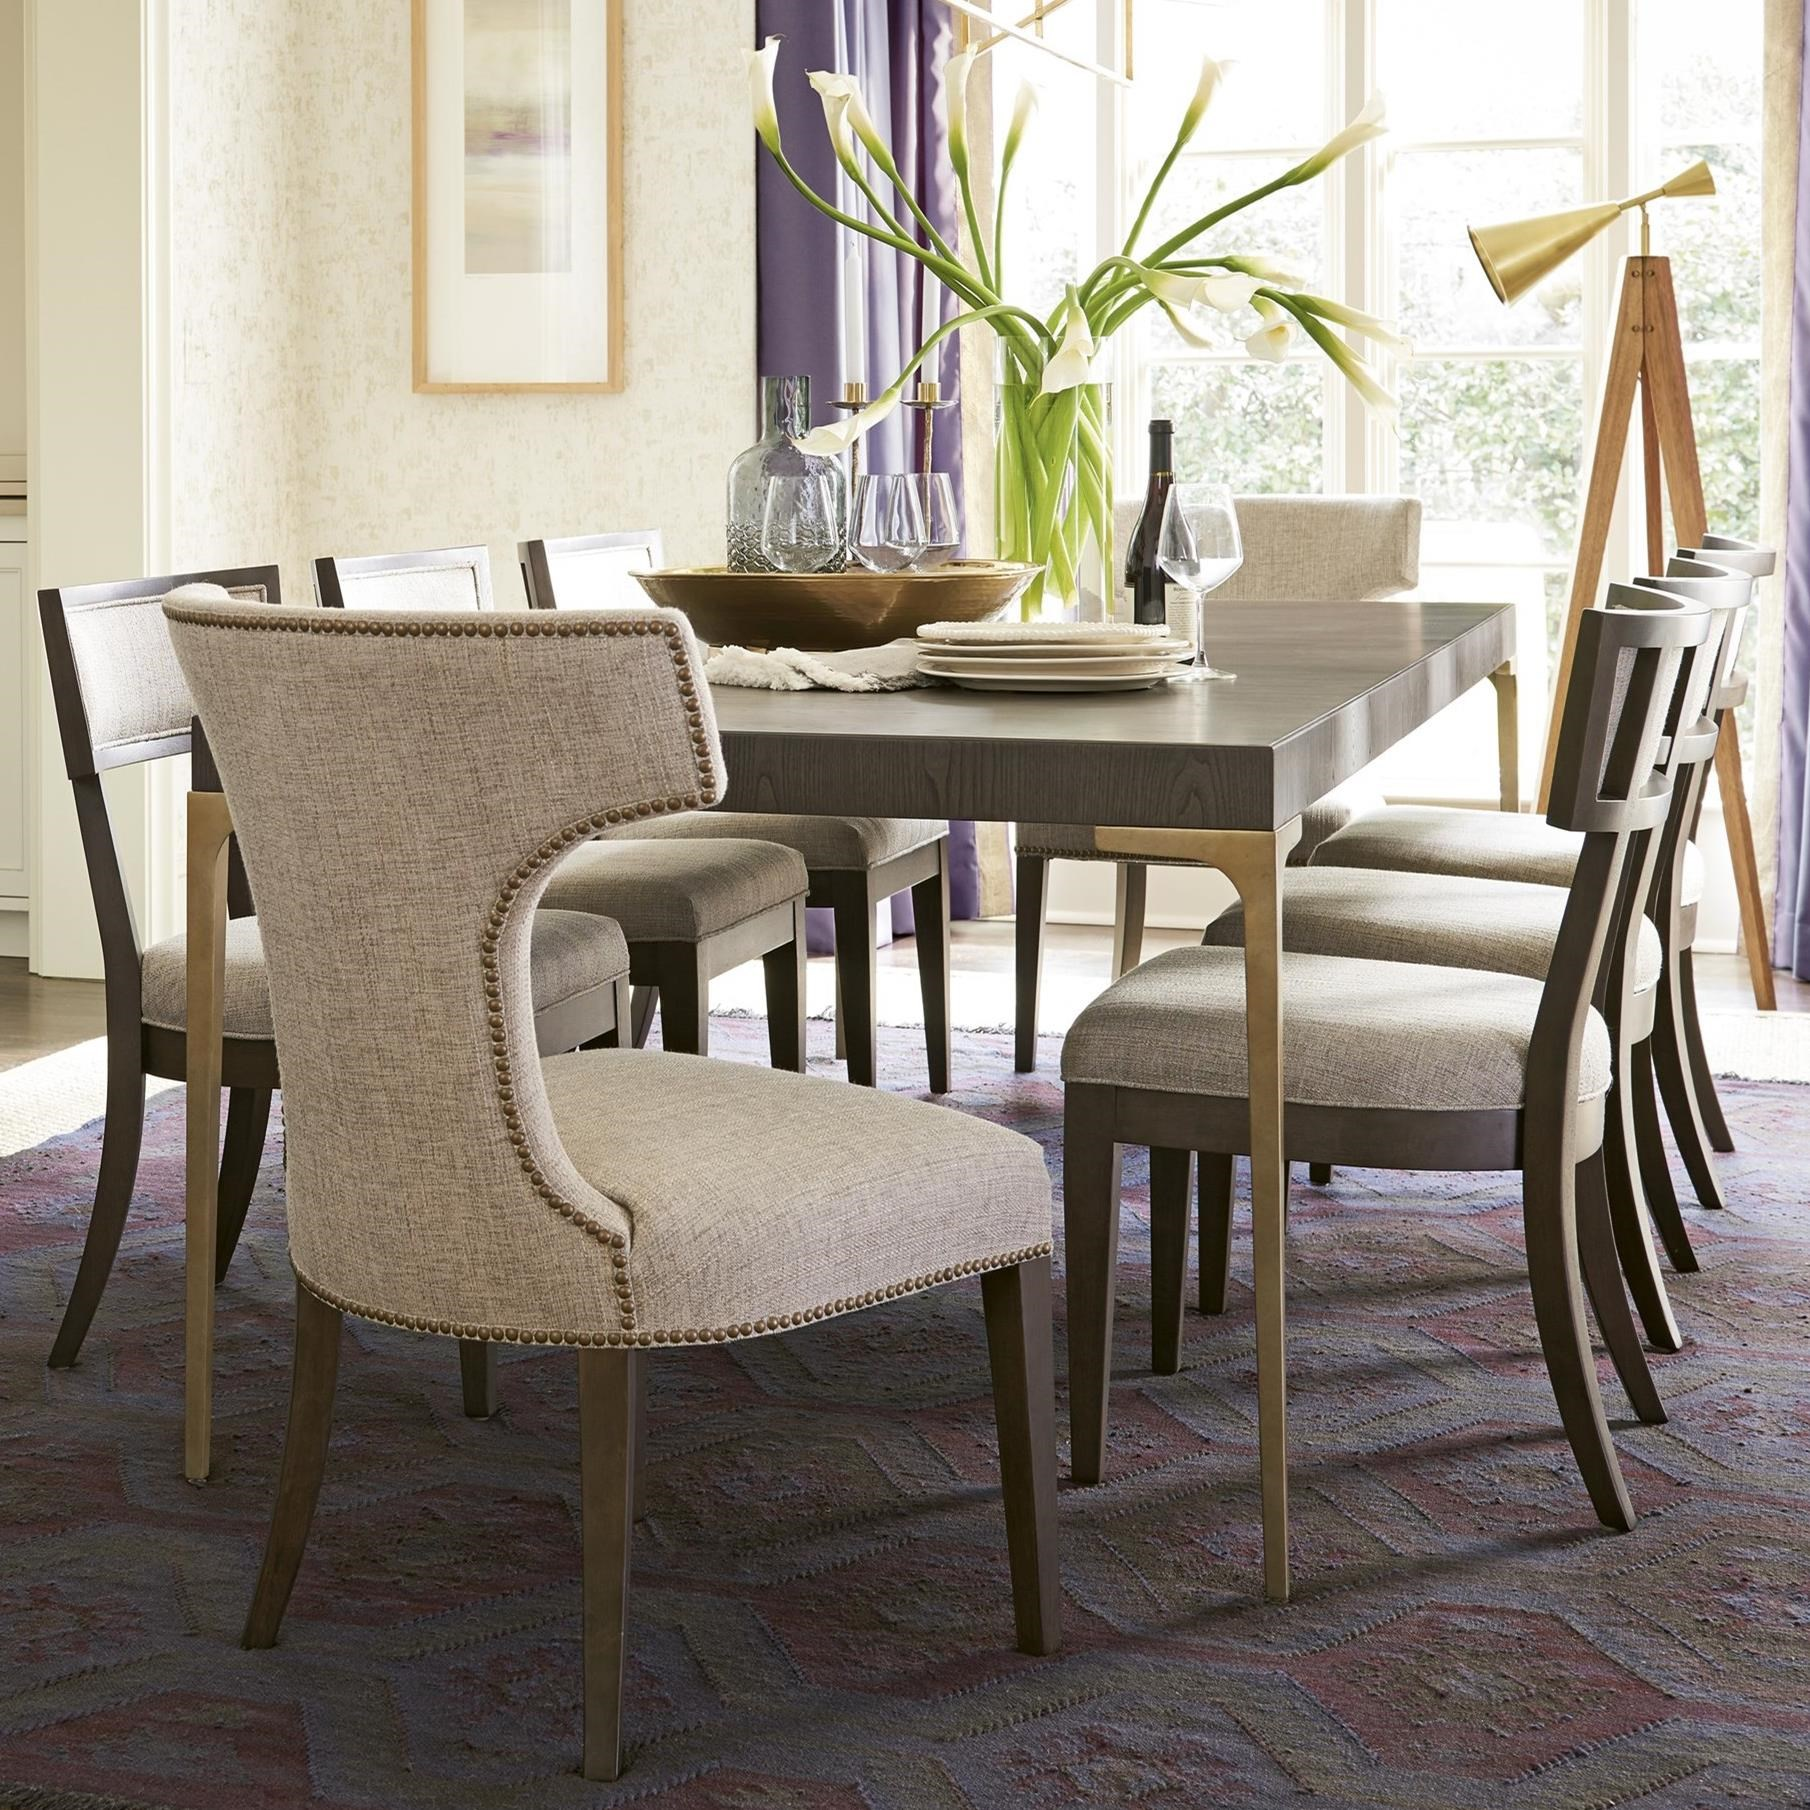 Soliloquy 9 Piece Table and Chair Set by Universal at Baer's Furniture